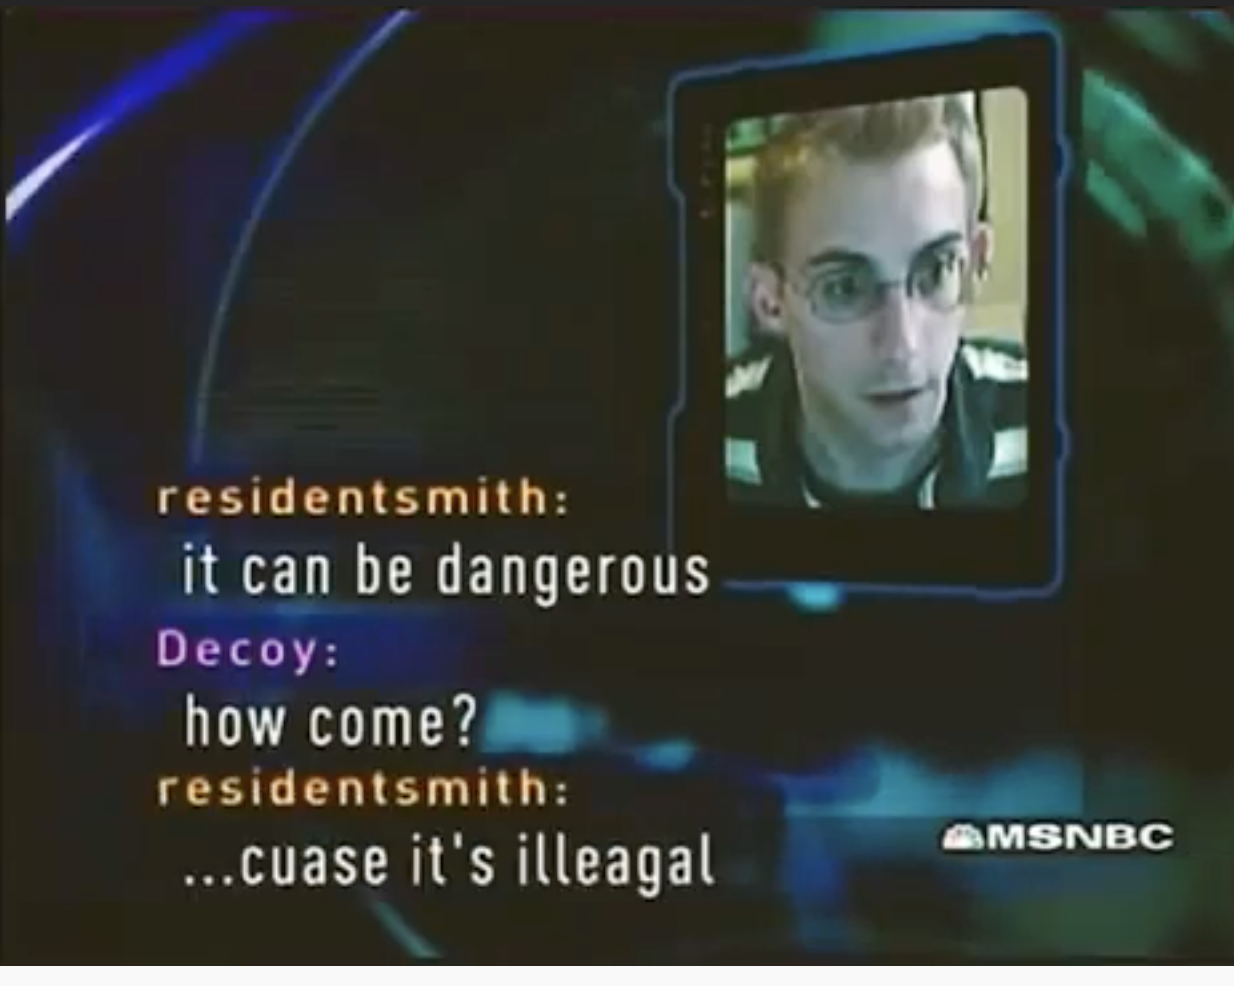 """Justin Smith on the show with the chat log of him saying """"it can be dangerous...cause it's illegal"""" to the decoy"""